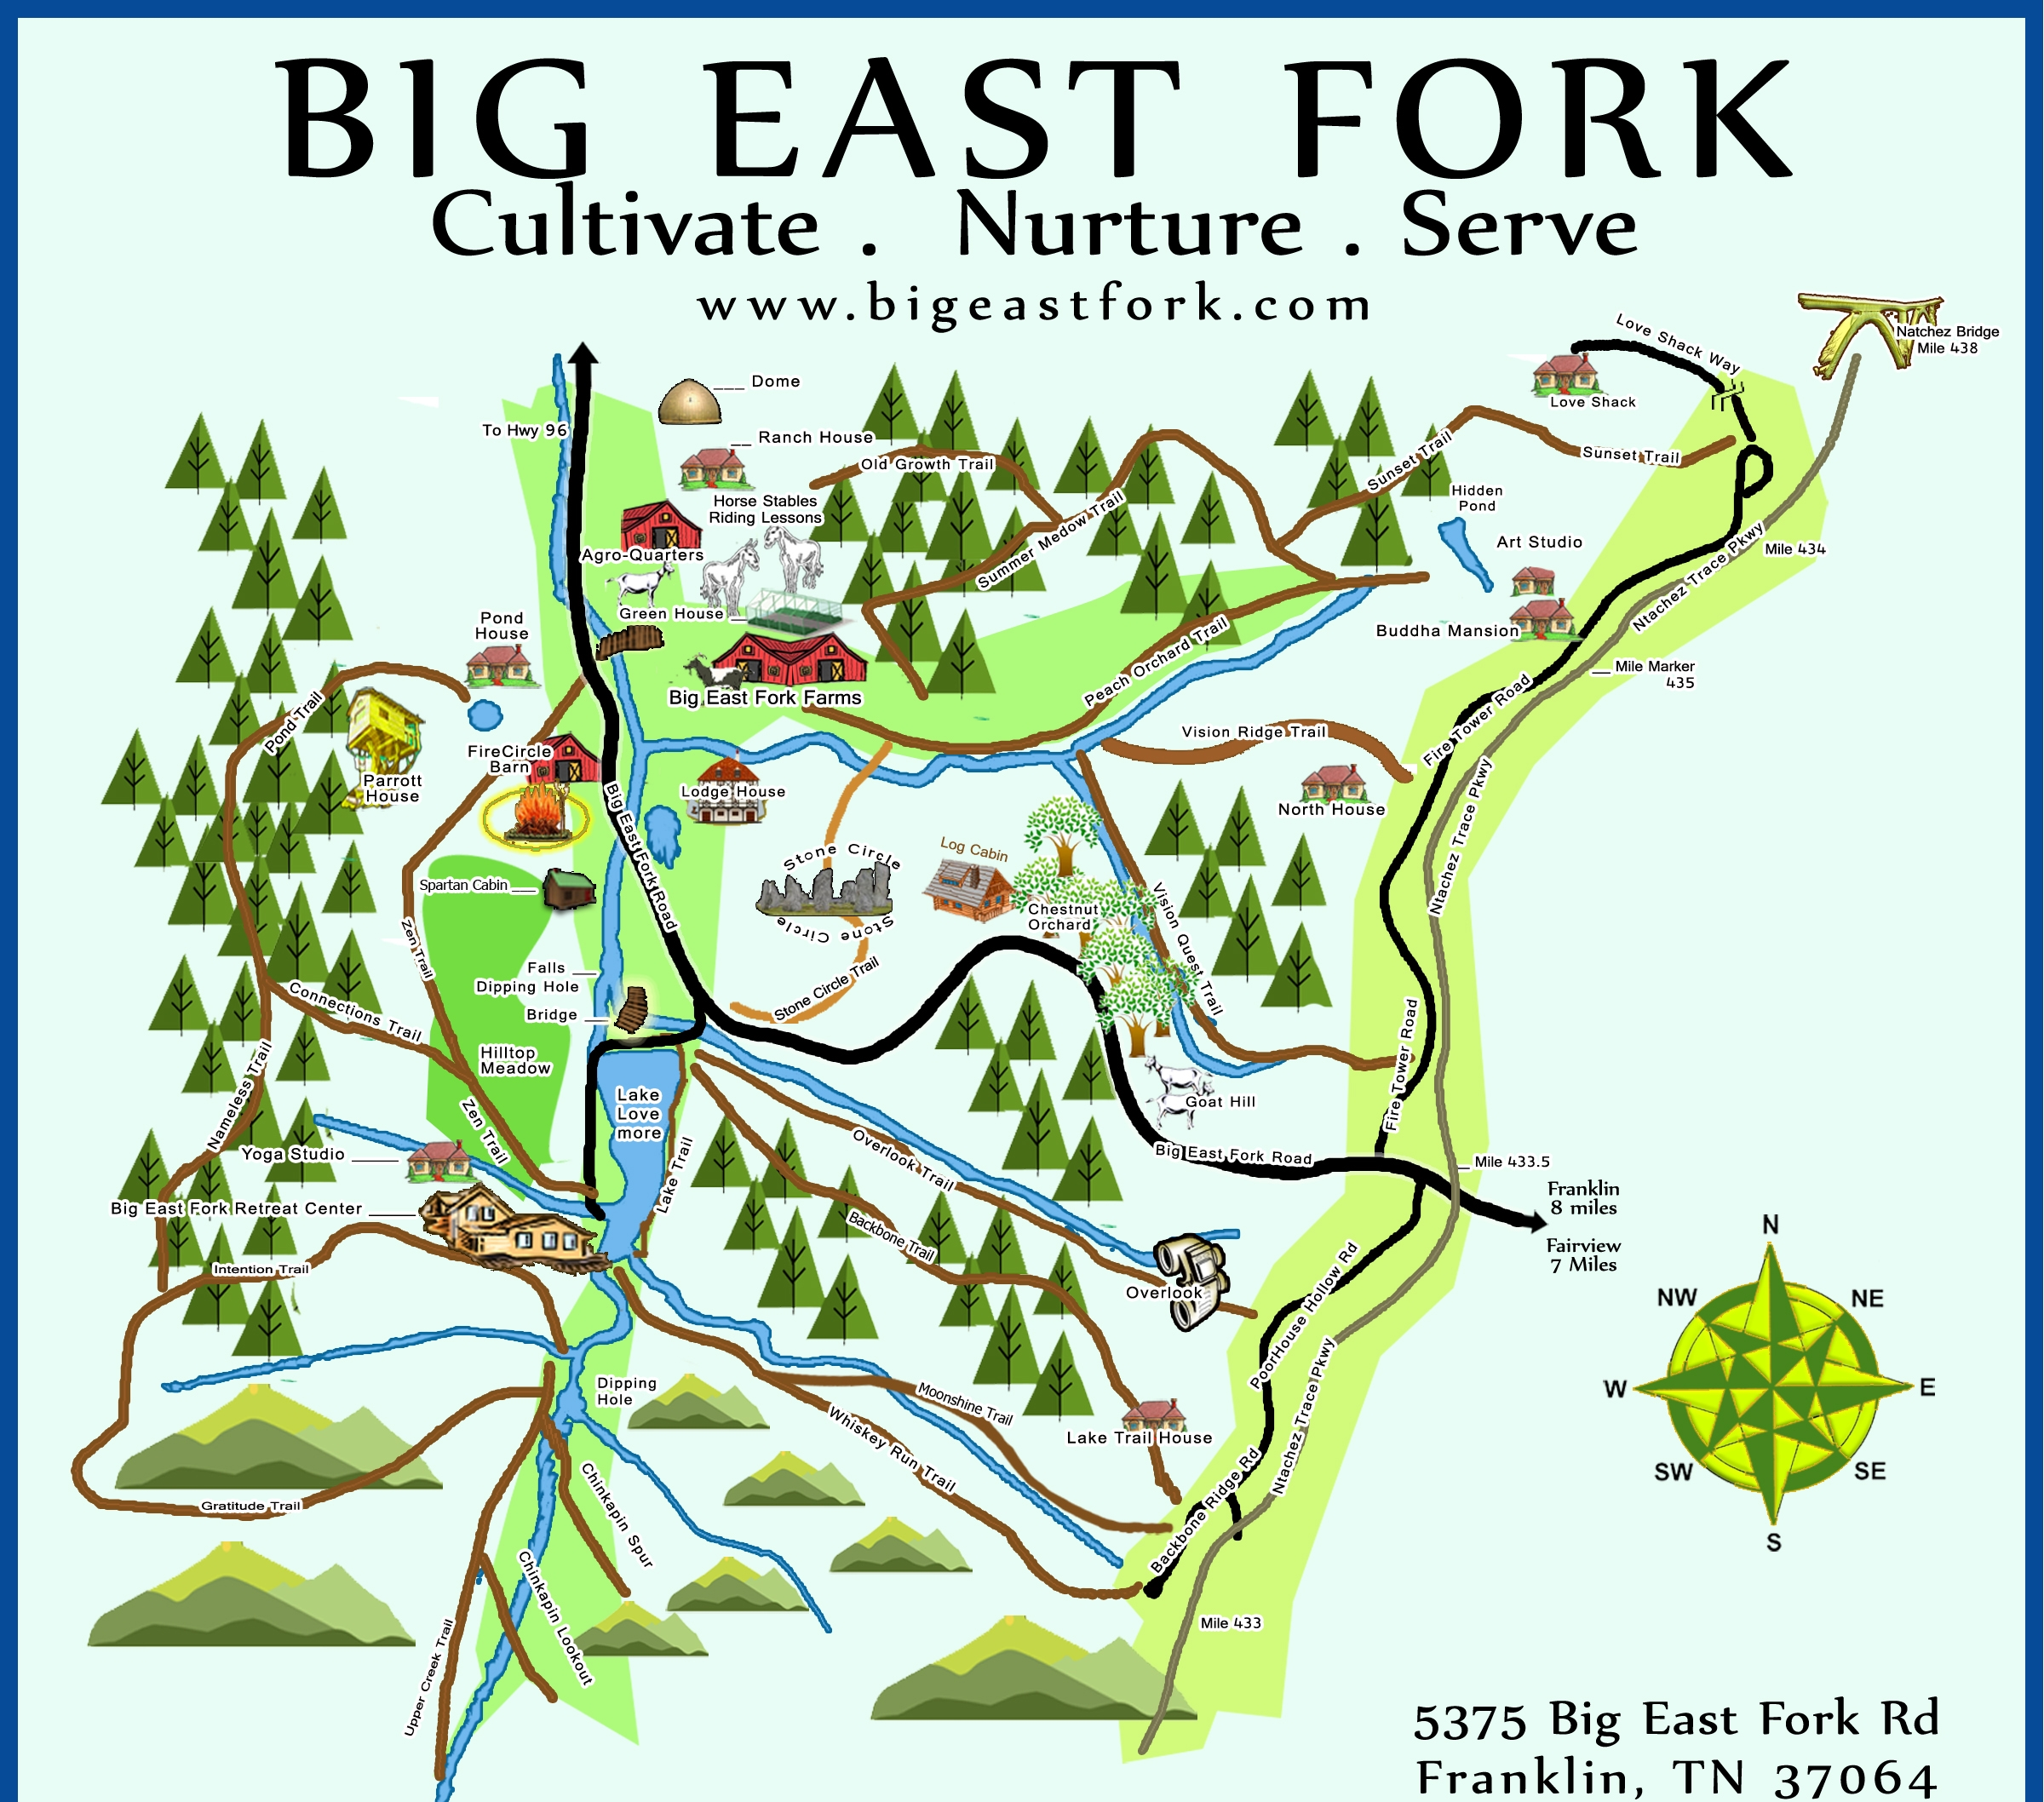 Miles of trails, six-acre lake, Center for Sustainable Stewardship Retreat Center, multiple houses for events and lodging -- all surrounded by pristine nature.